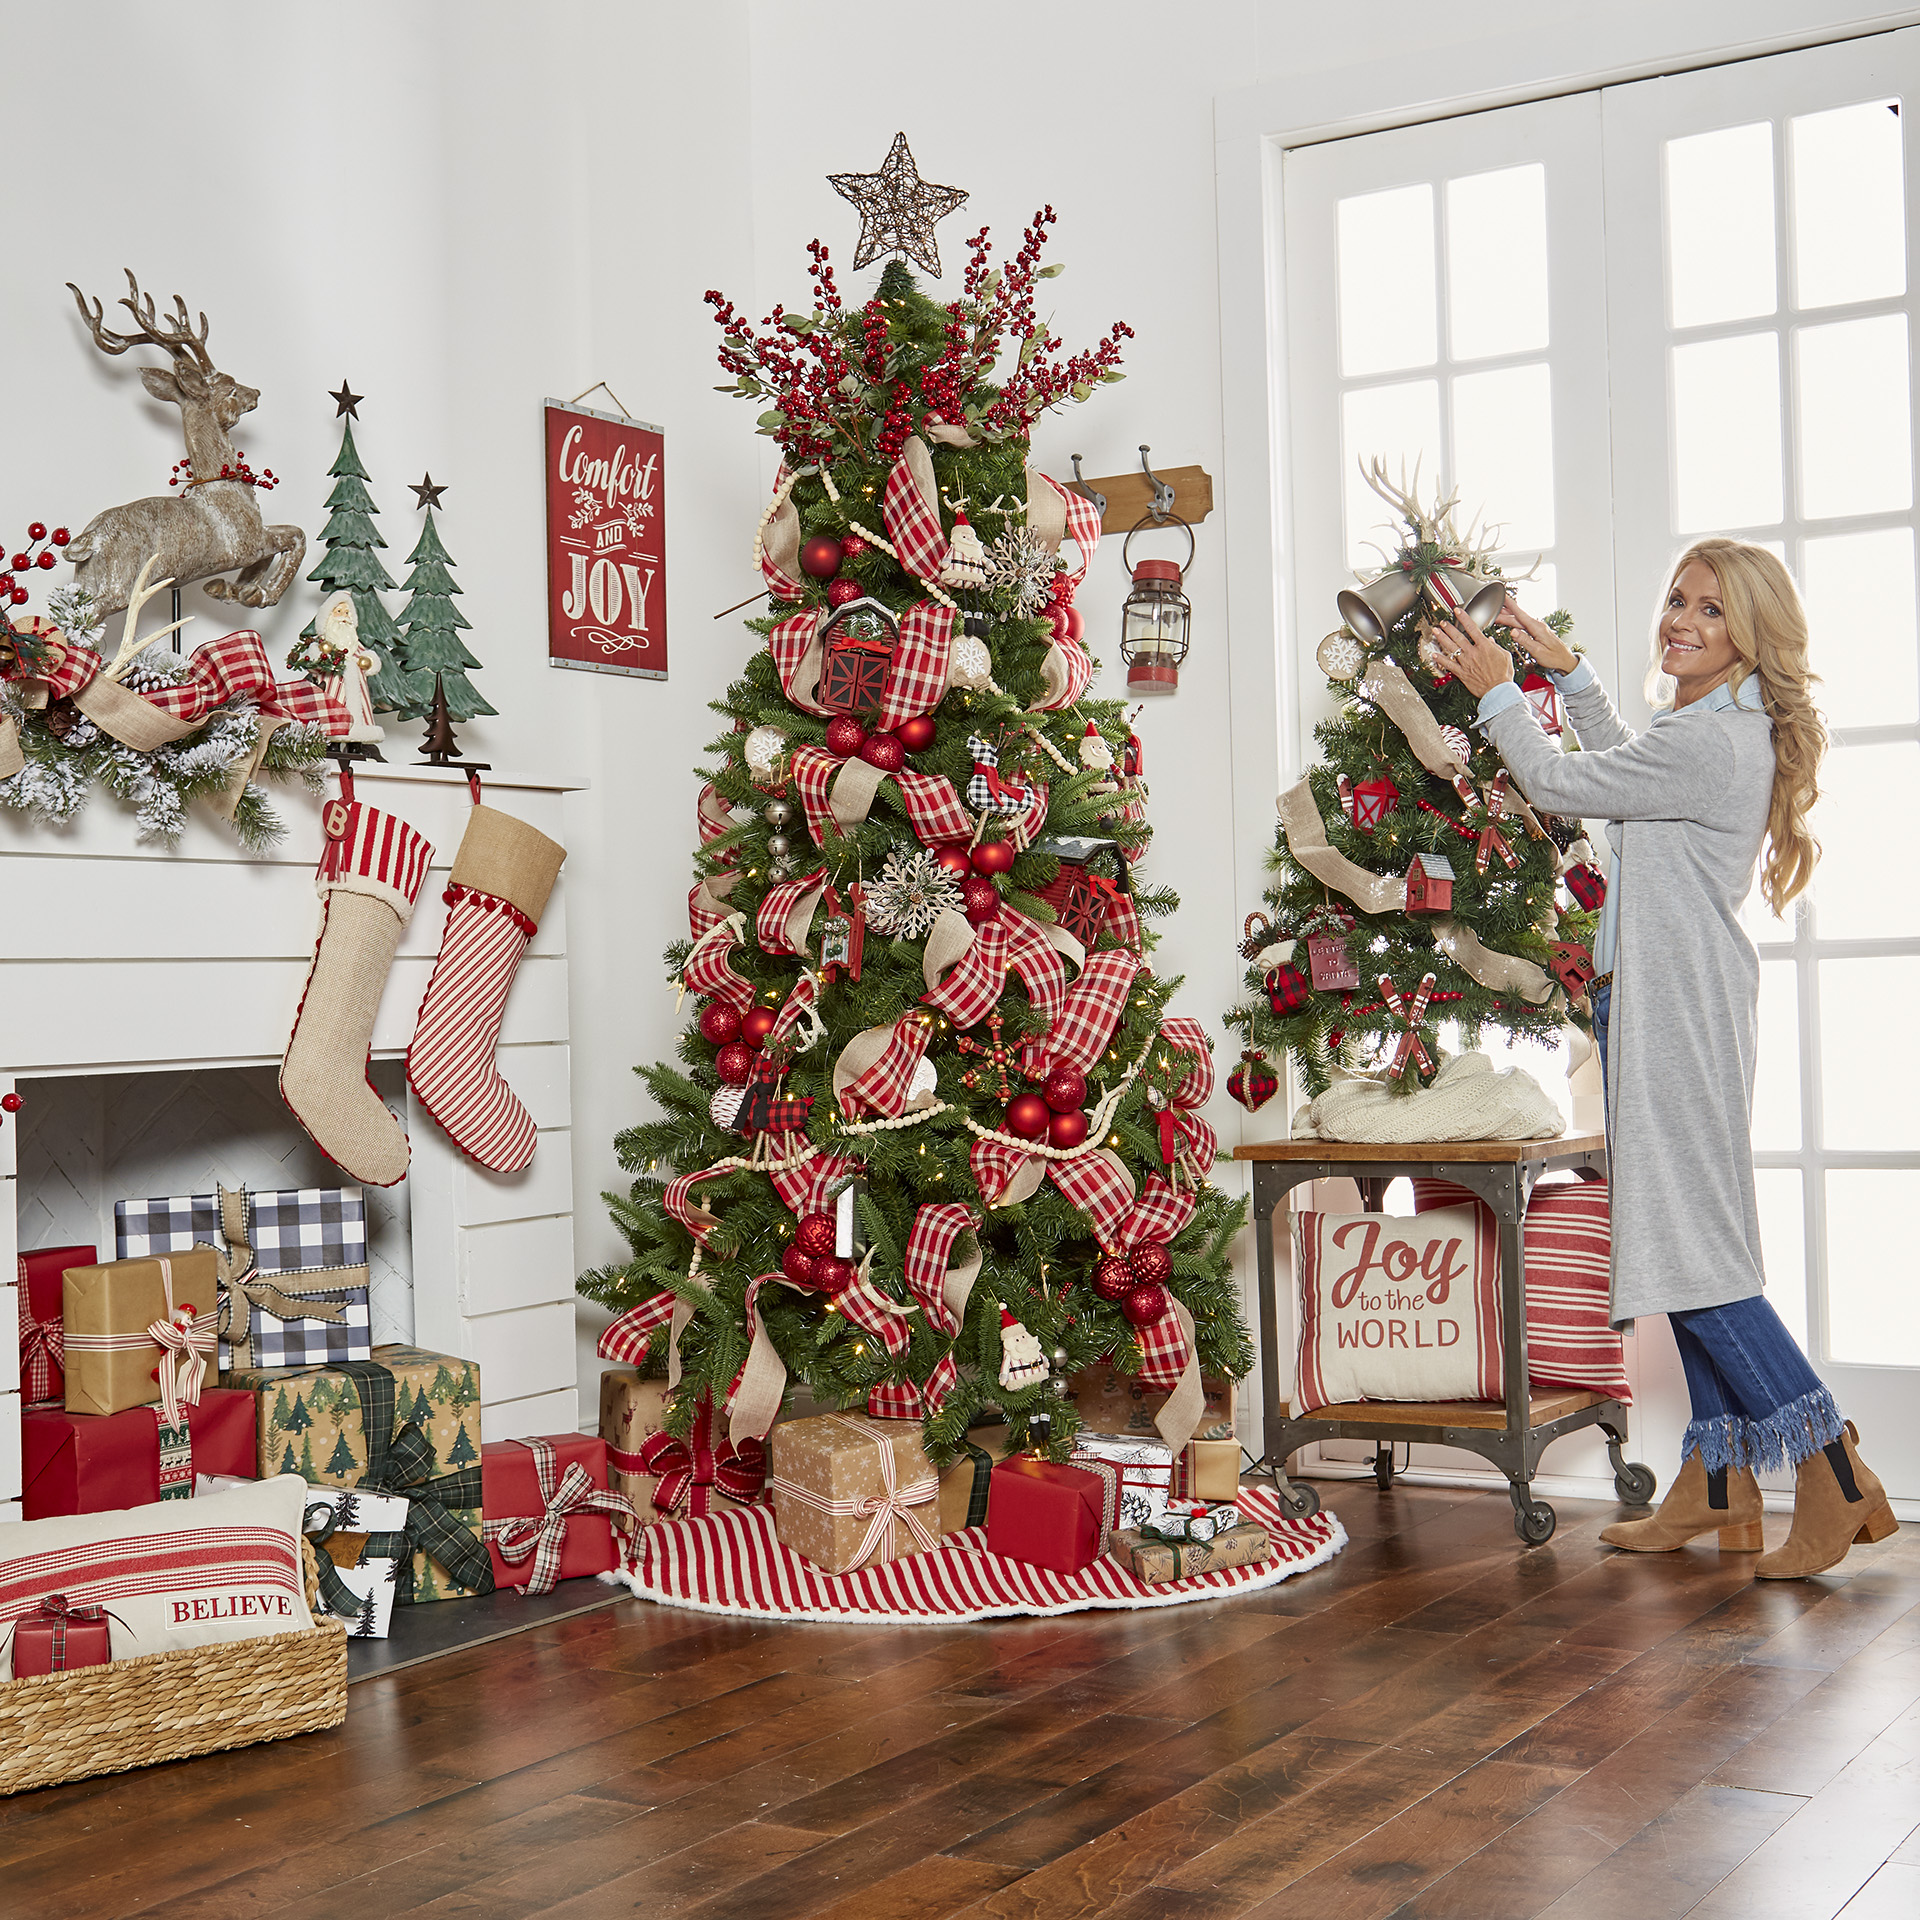 Creating Holiday Magic With Michaels - The Pickled Rose